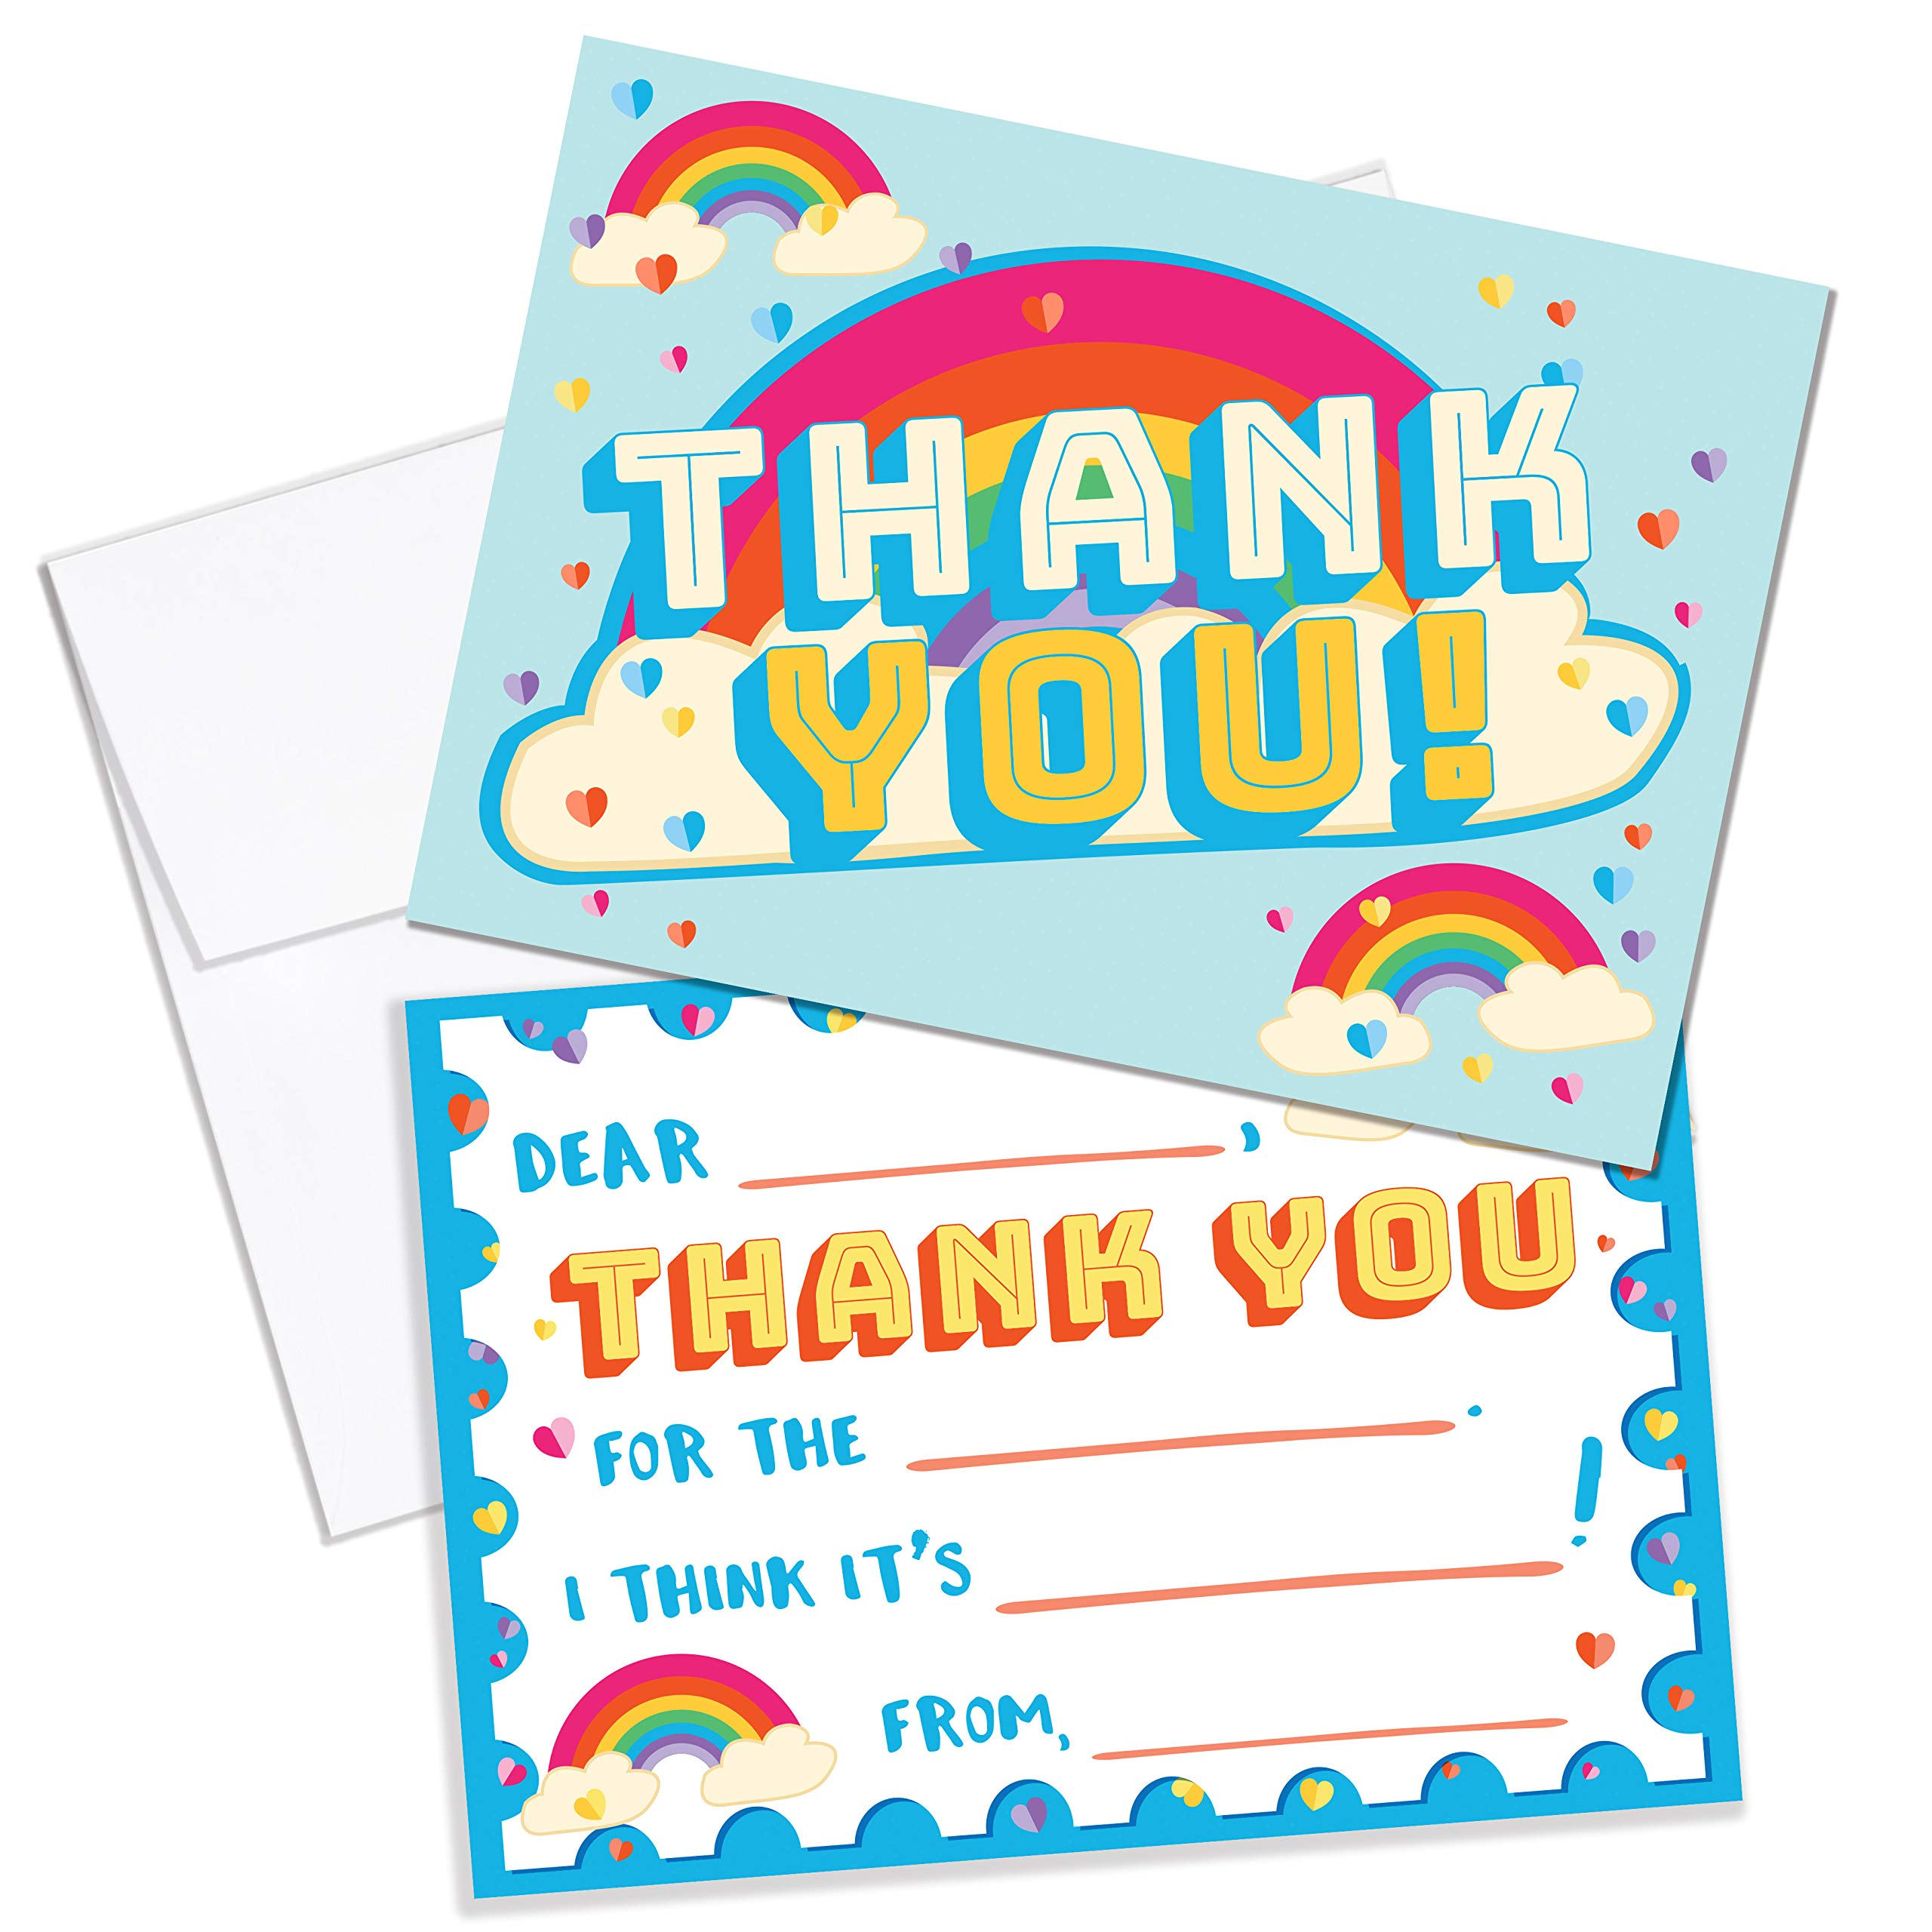 Fill in The Blank Thank You Cards for Kids, 25 Thank You Cards Kids, Girls, Boys, Children, Toddlers. Heart & Rainbow Thank You Notes Kids with Envelopes